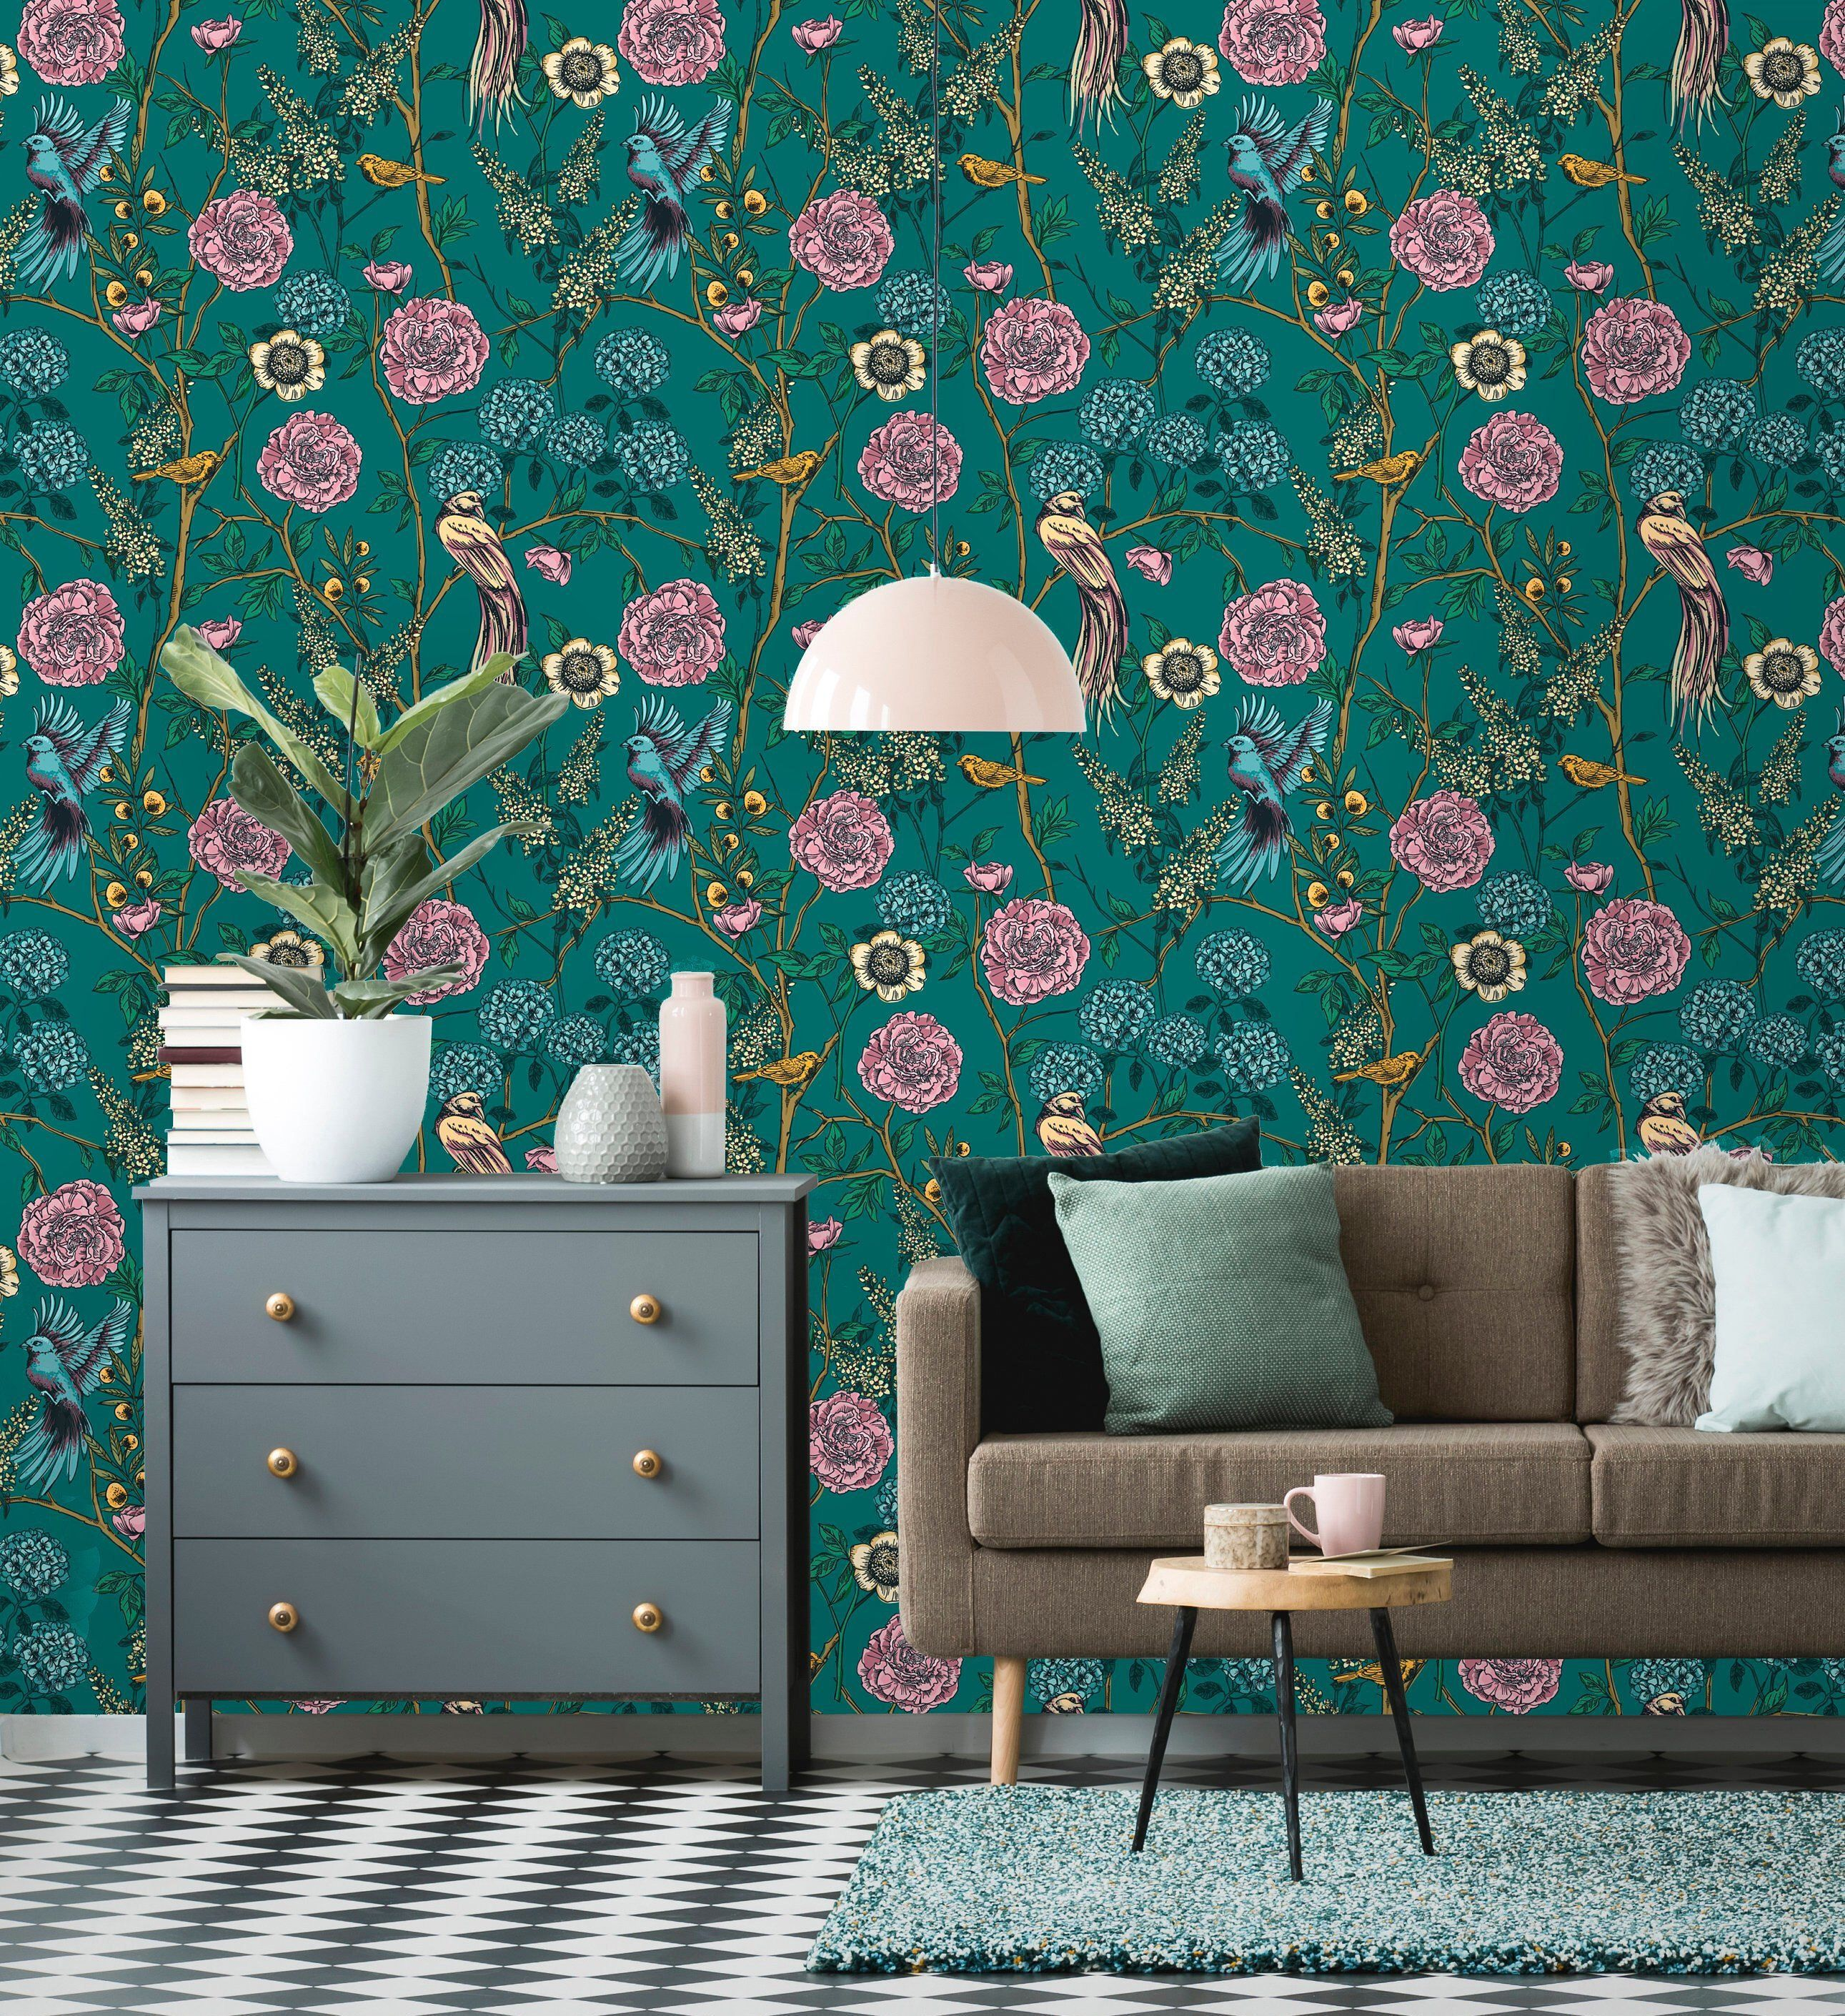 Removable Wallpaper Peel and Stick Victorian Garden